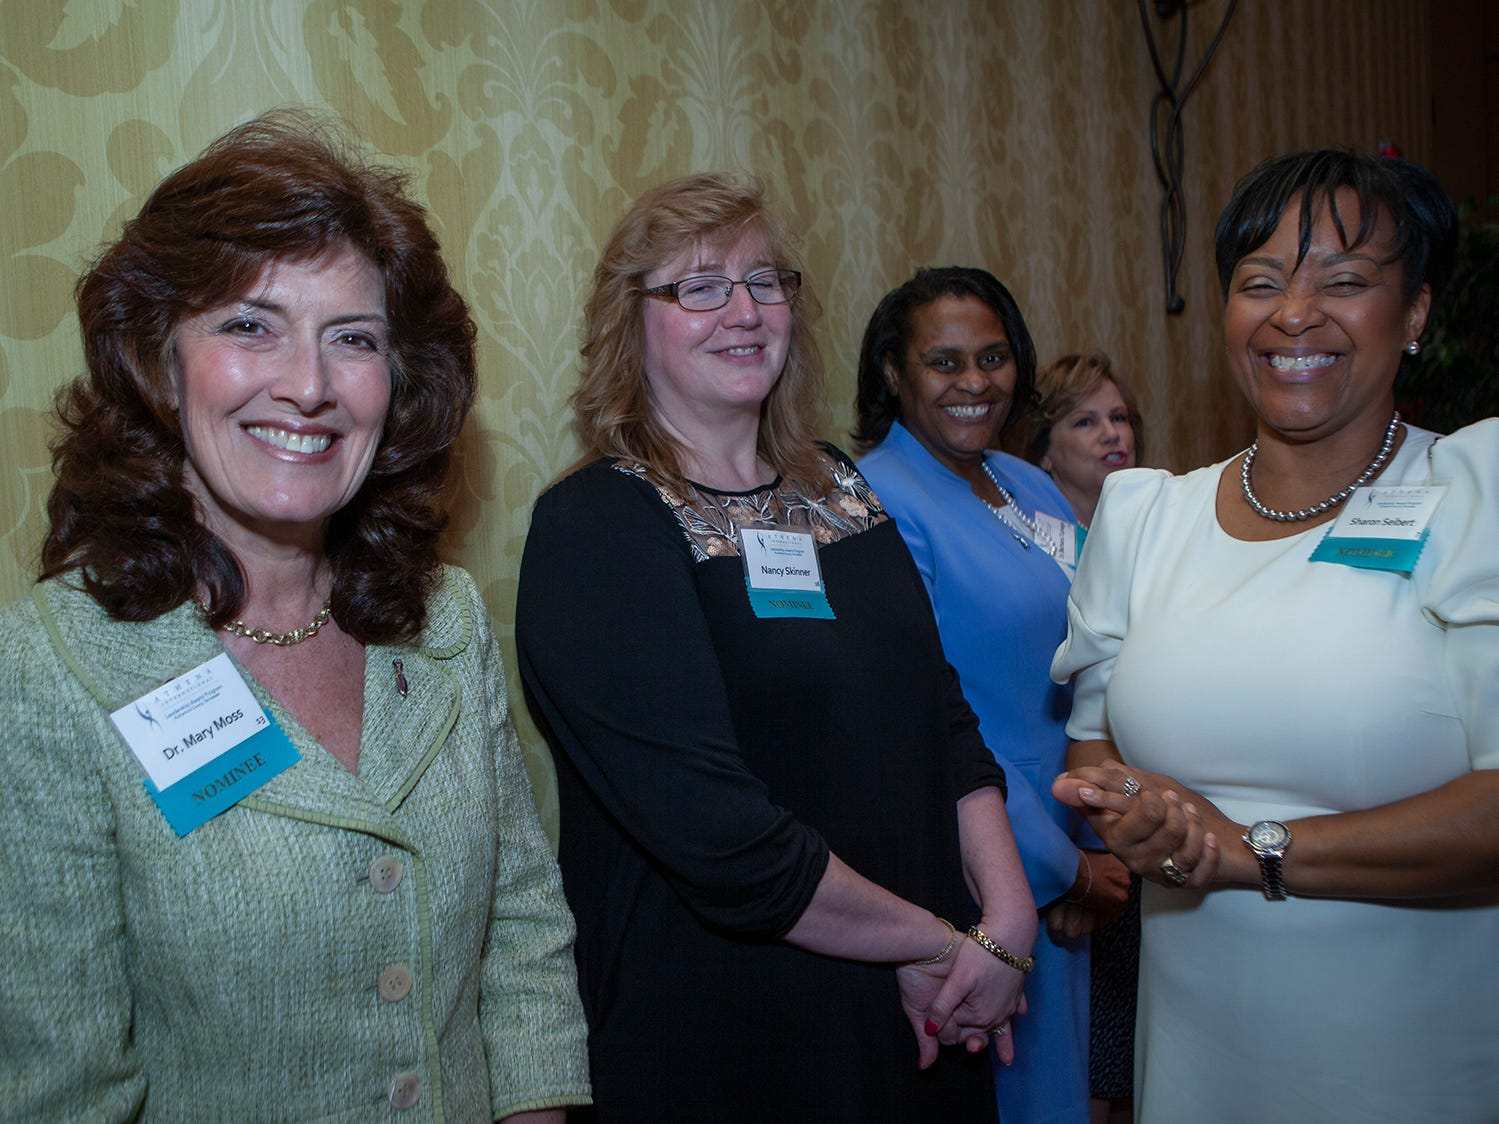 Nominees for the 2019 ATHENA Leadership Awards wait backstage before being introduced. Hosted by Rutherford Cable, the event was held Friday, April 12, 2019 at Embassy Suites Murfreesboro.